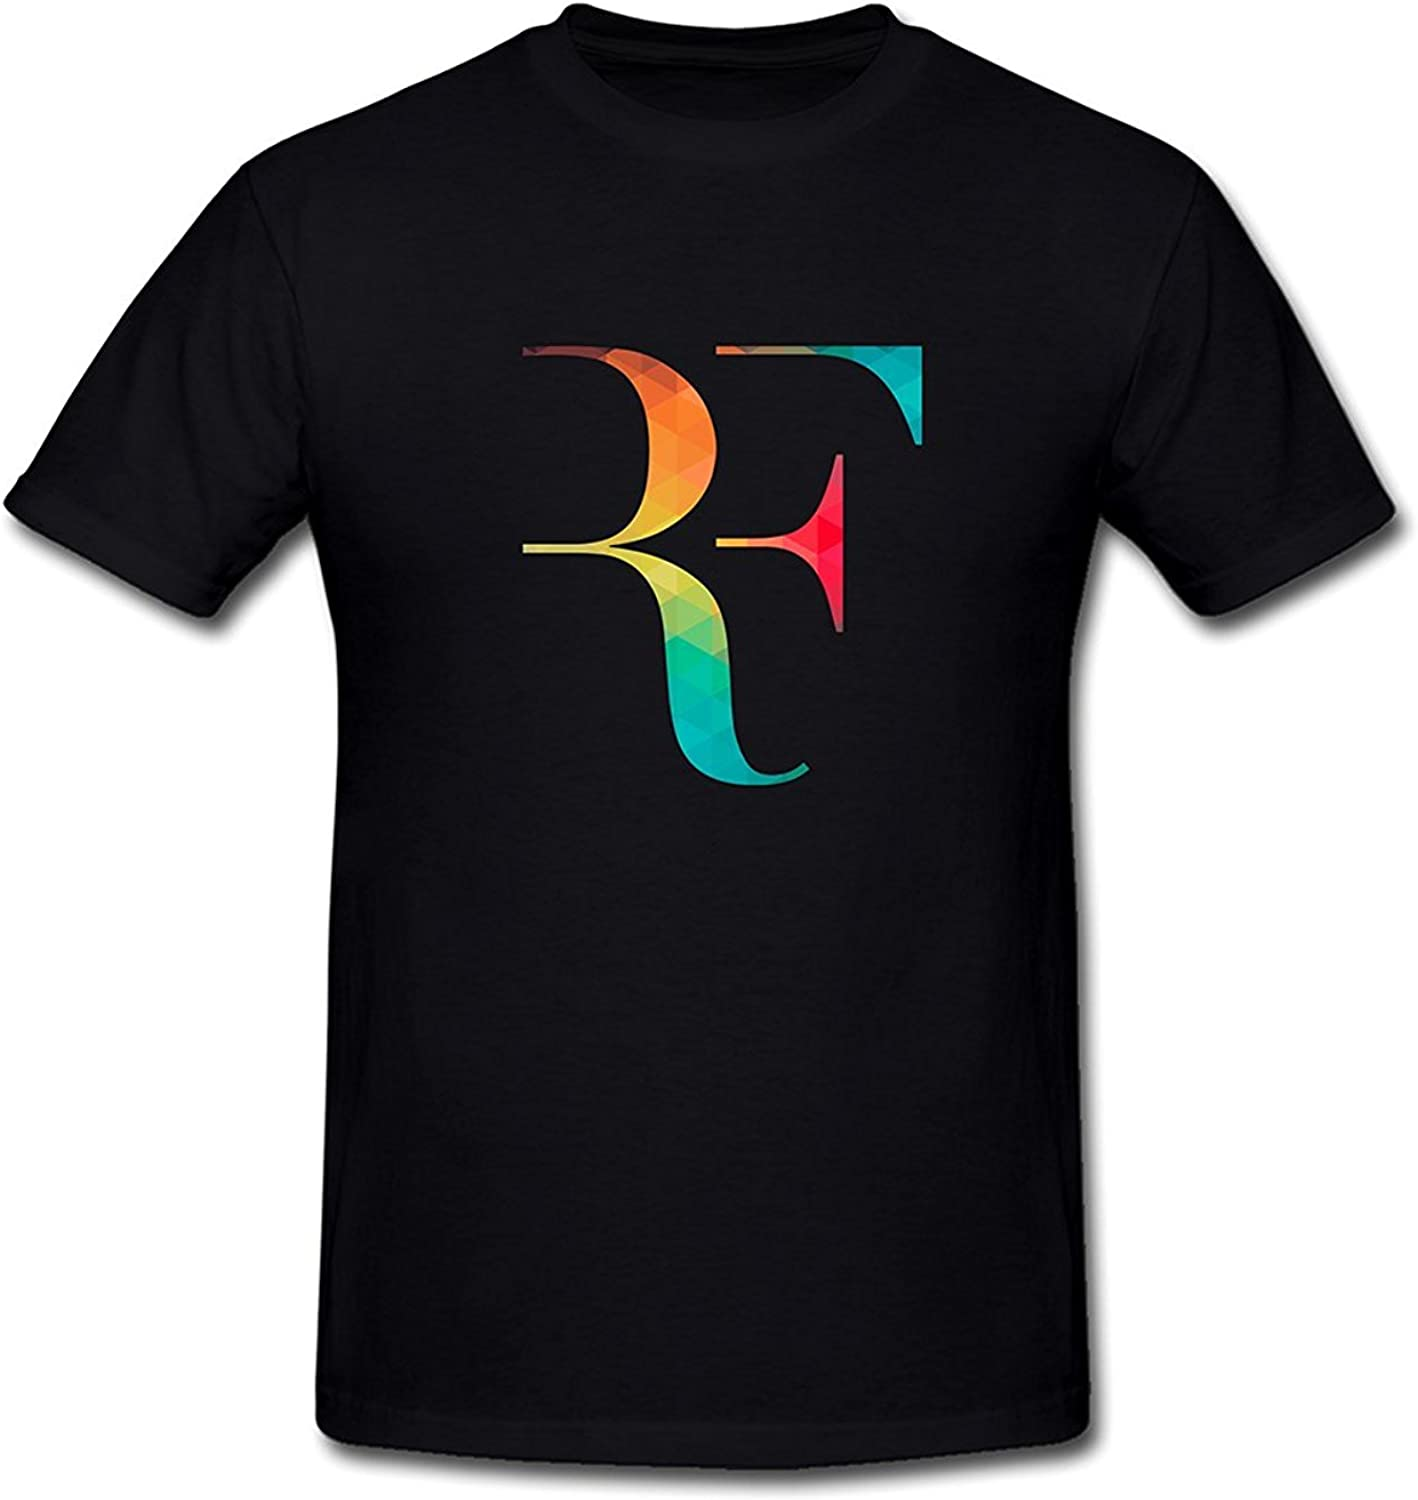 SEagleo2 Mens Roger Federer RF Logo T-Shirt Sizes S-3XL Xxlarge ...